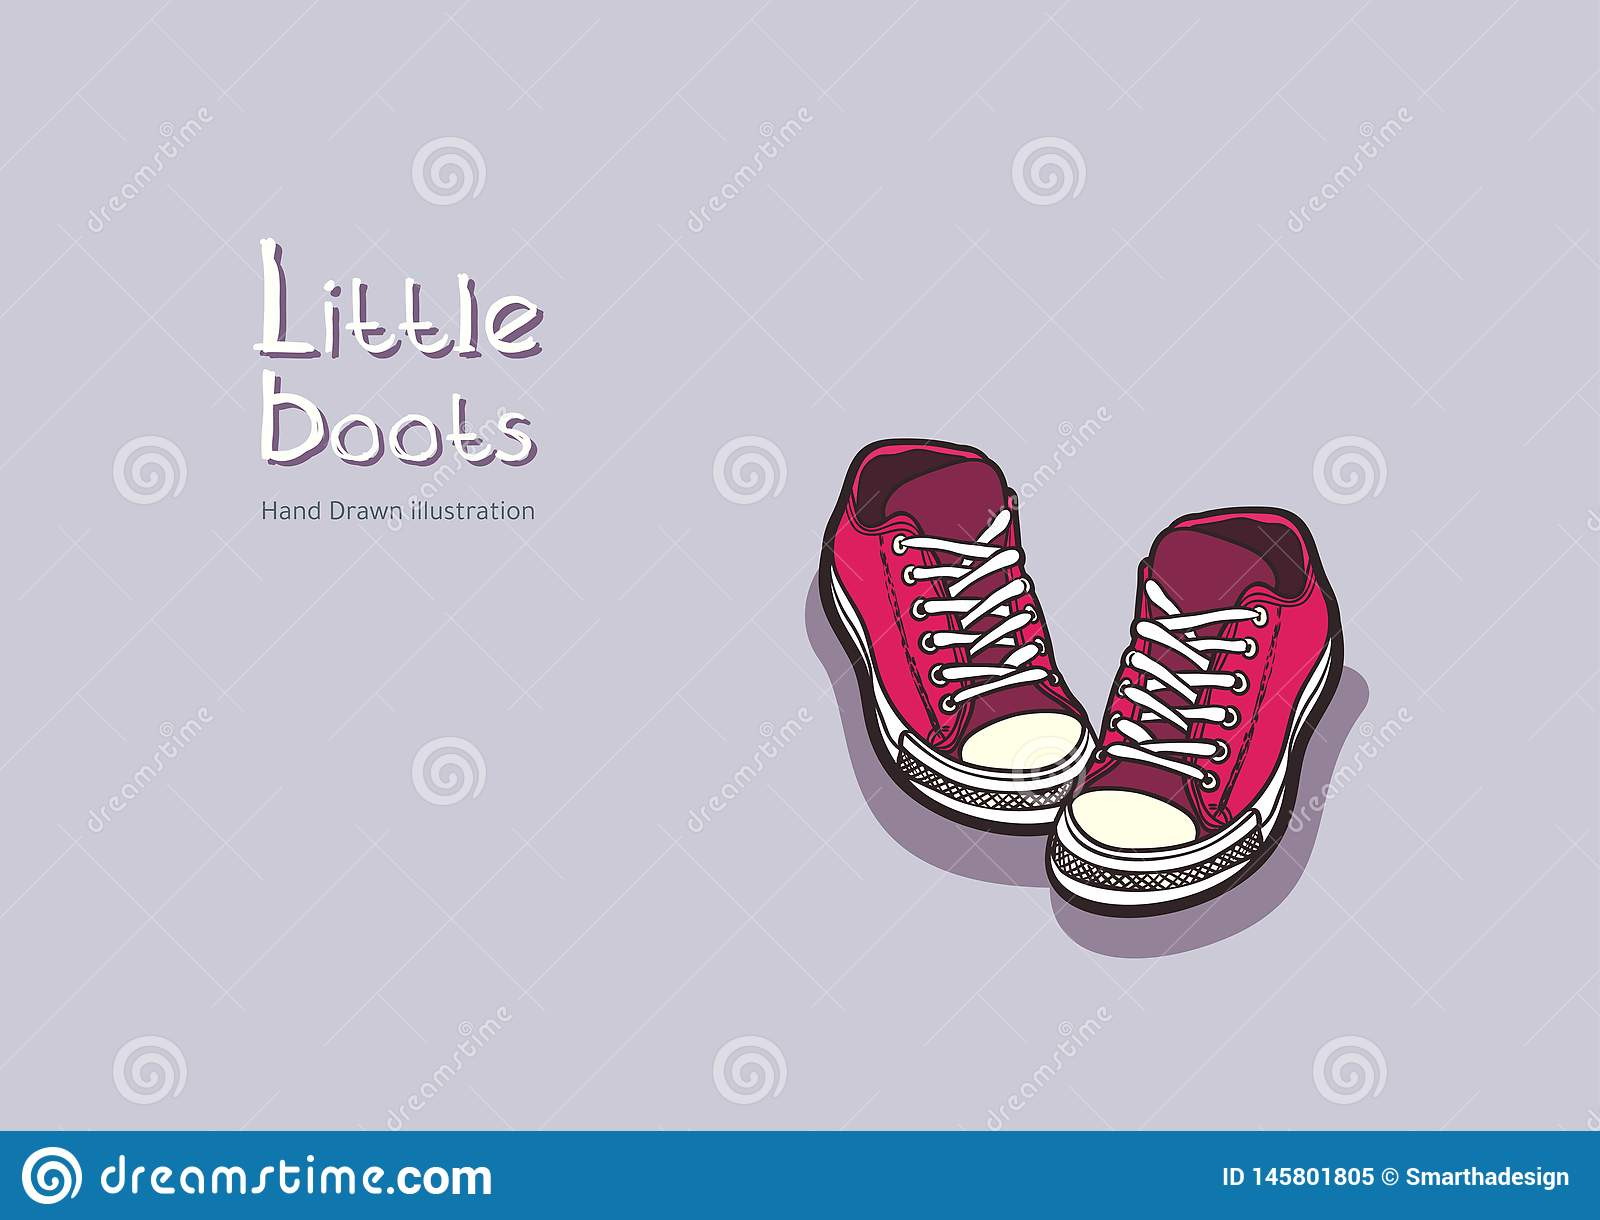 Children pink boots vector in hand drawn graphic for logo, poster, postcard, fashion booklet, flyer. Hand drawn illustration.